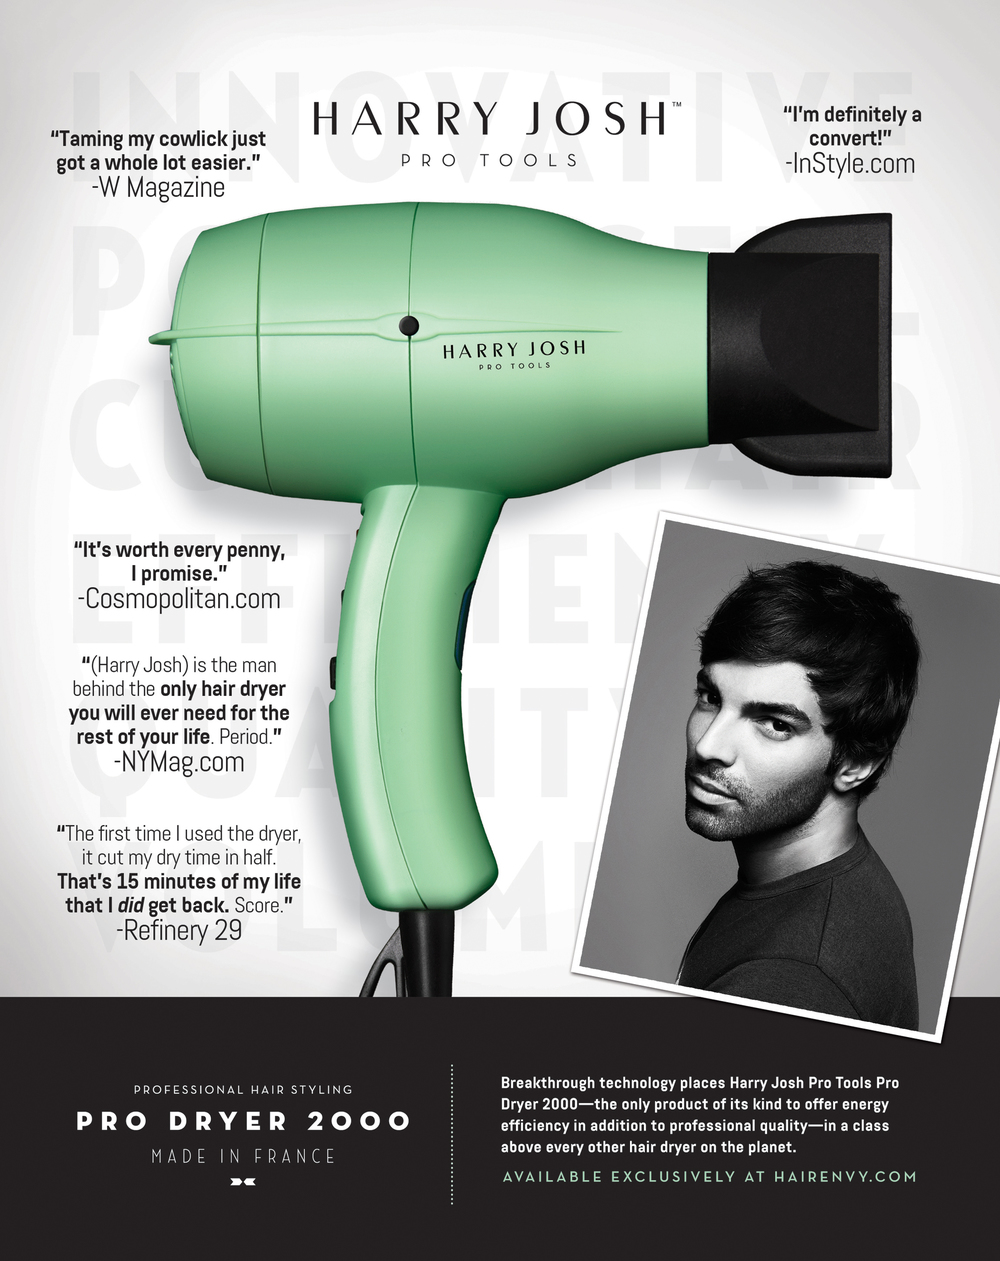 Pro Dryer 2000 advertisment